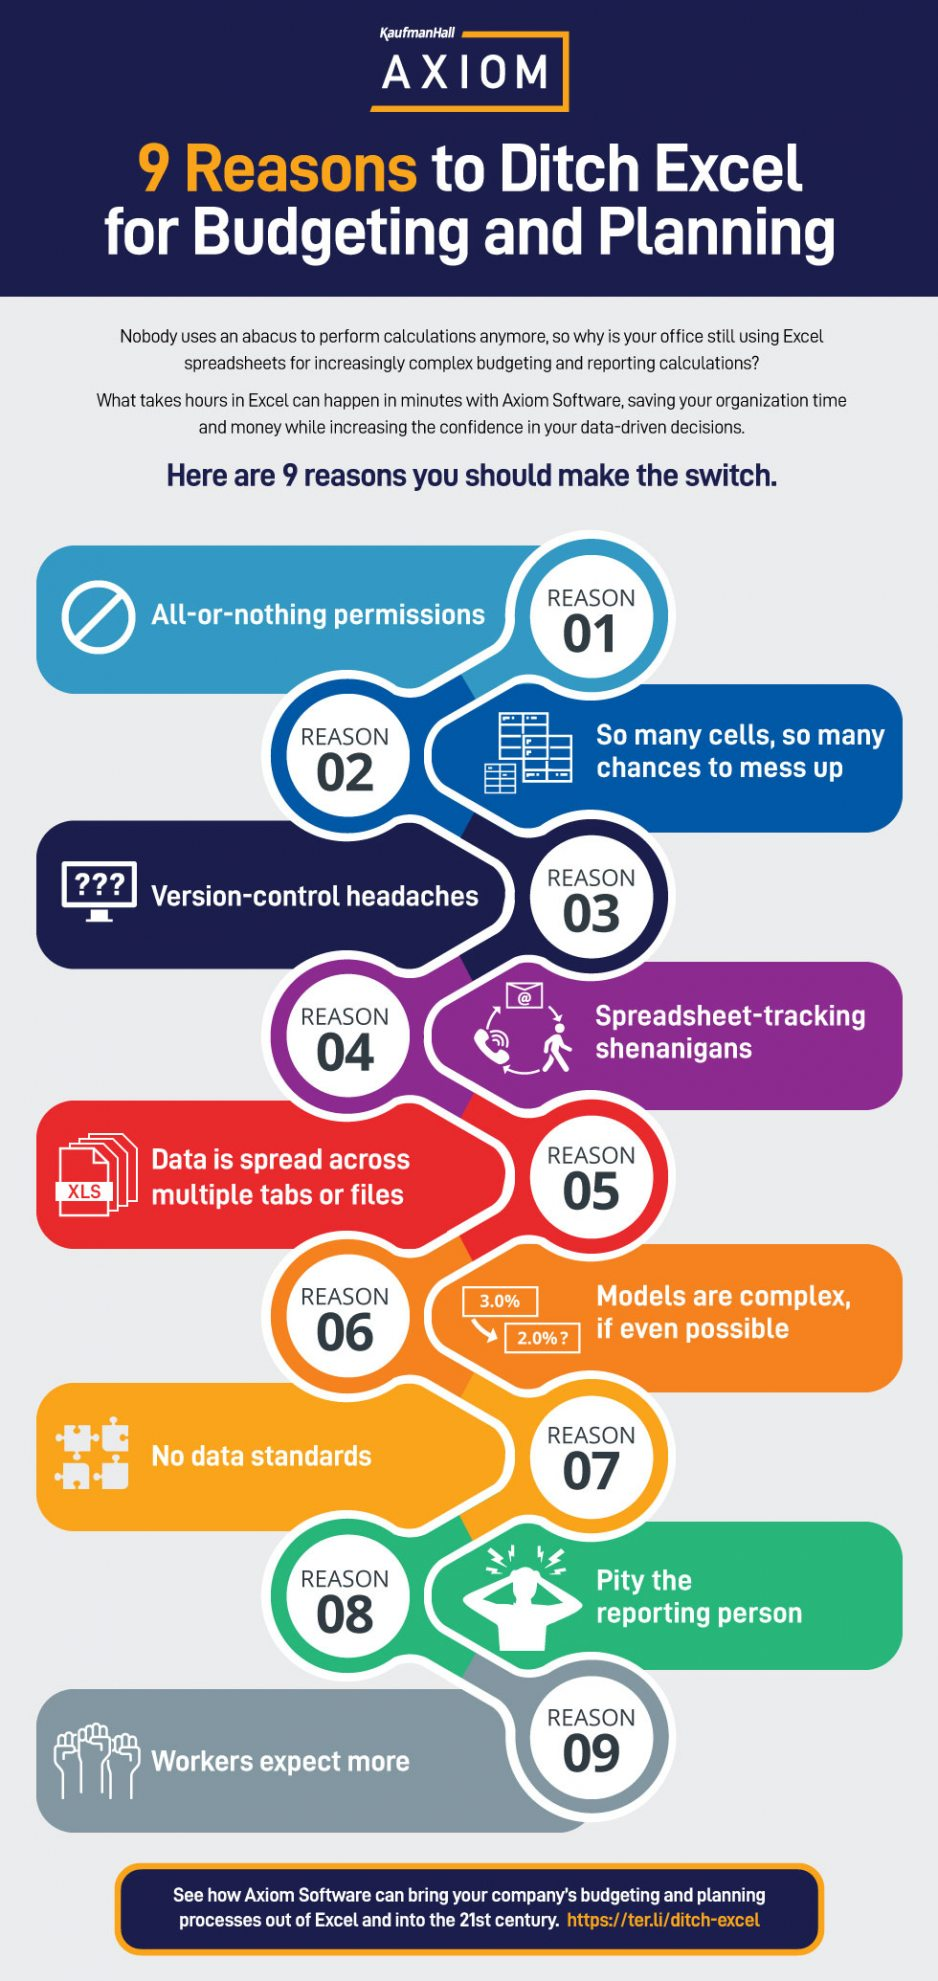 9 Reasons to Ditch Excel - Infographic